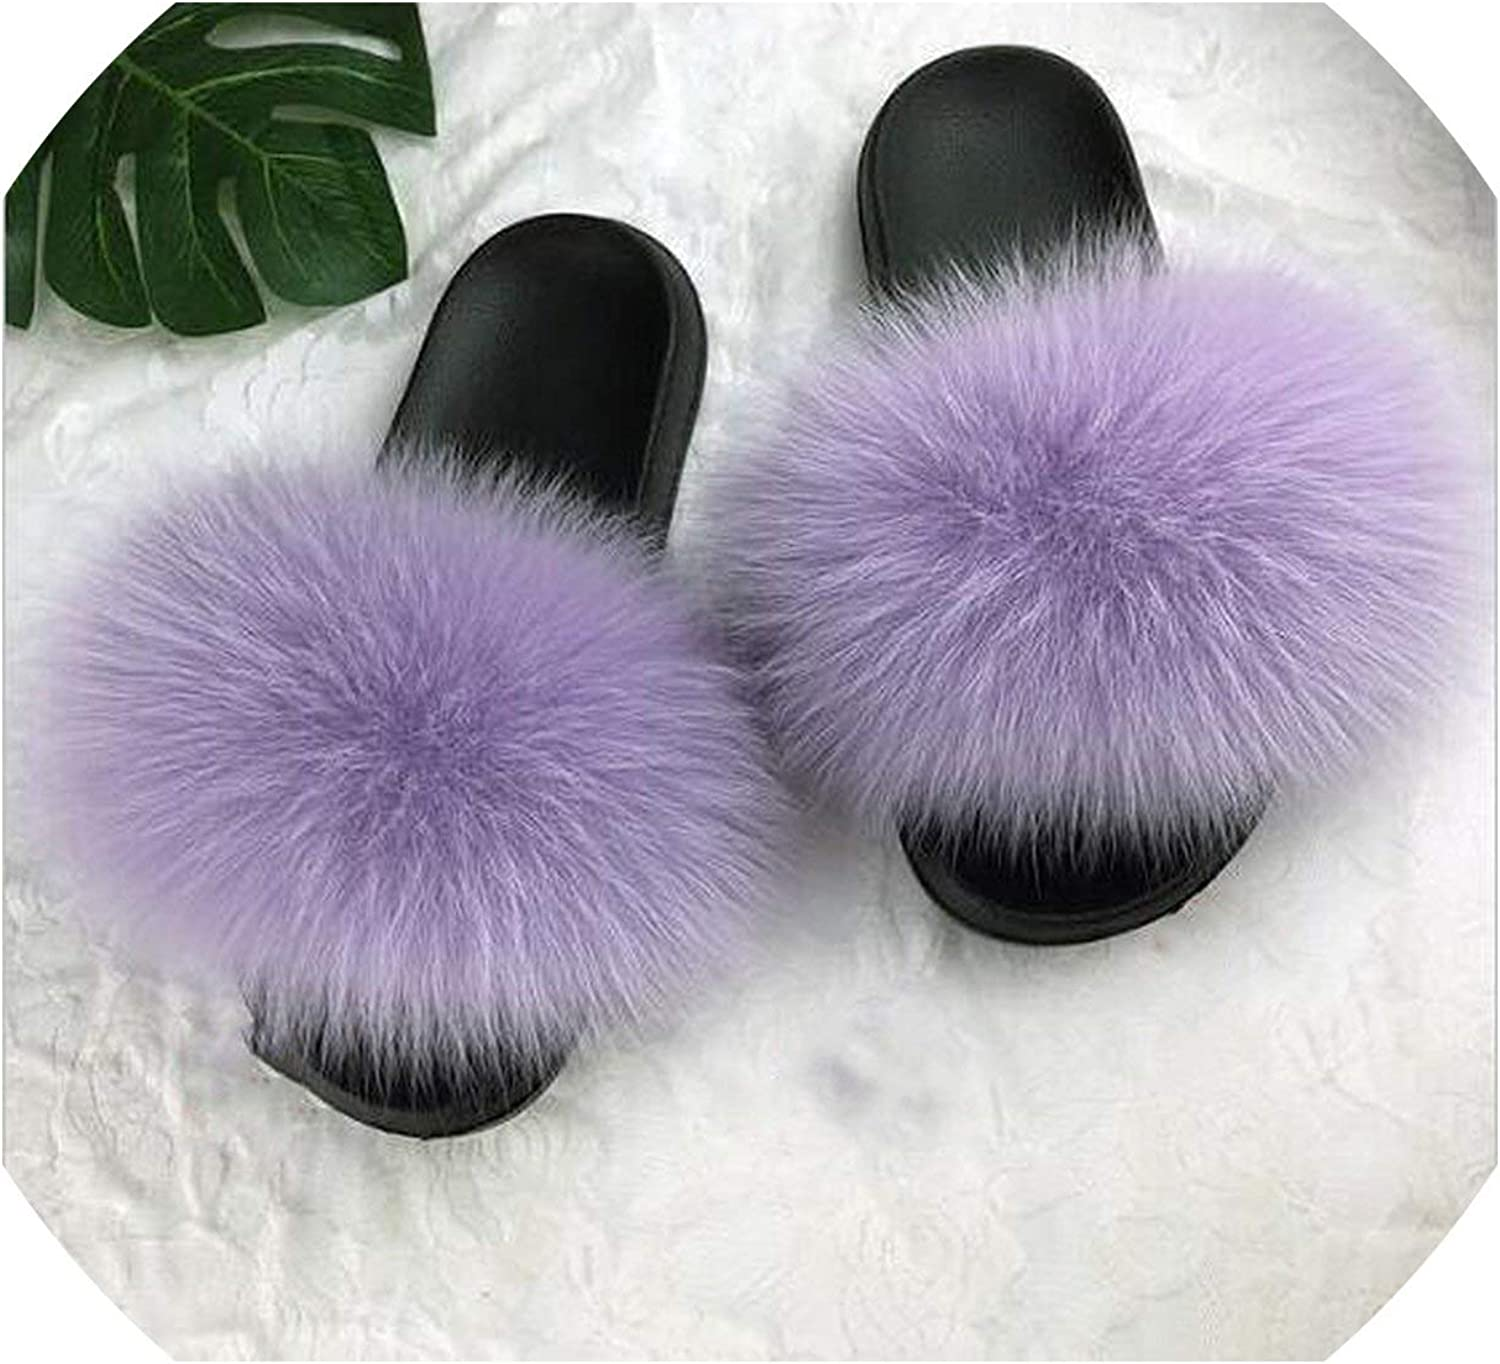 2019 Womens Summer Outdoor Slippers Real Fur Slippers Rainbow Colors Women Slippers Beach Fox Fur Slides,See as pic,10.5